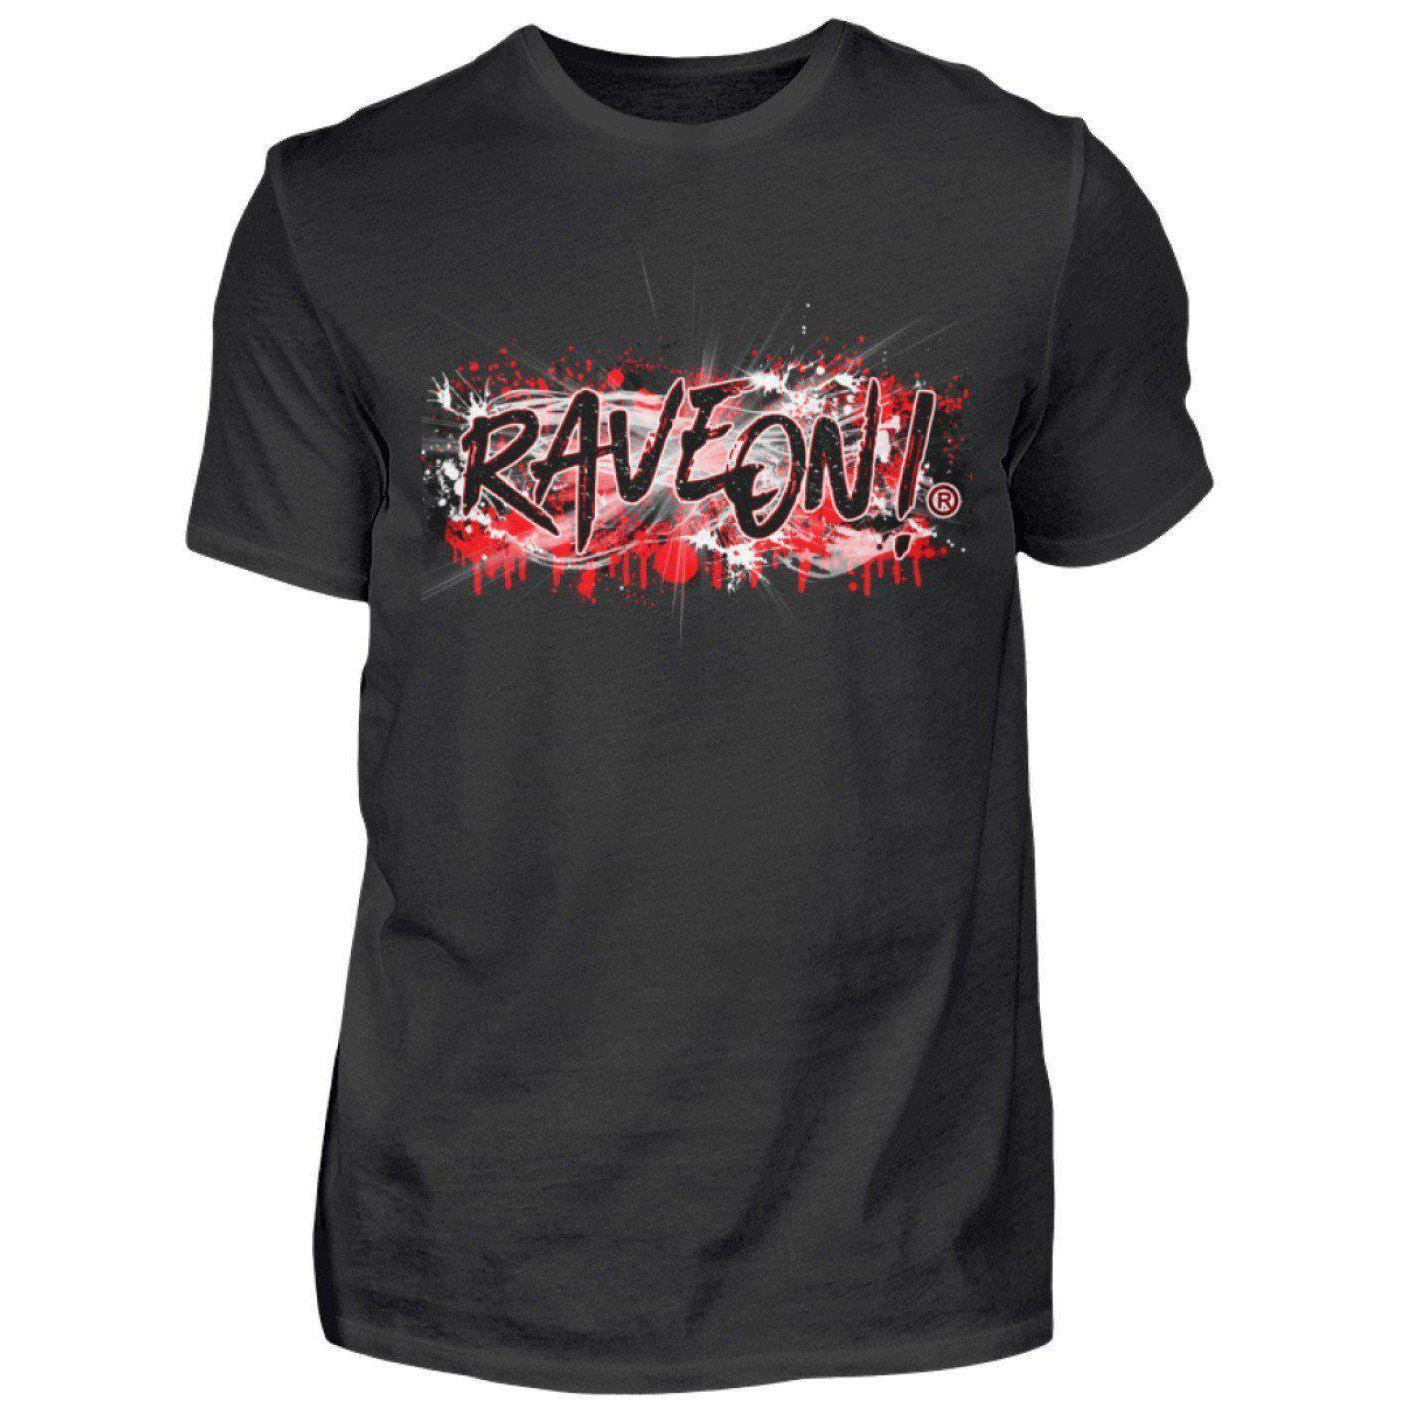 Rave On!® Bloody Graffity - Herren Shirt Herren Basic T-Shirt Schwarz / S - Rave On!® der Club & Techno Szene Shop für Coole Junge Mode Streetwear Style & Fashion Outfits + Sexy Festival 420 Stuff